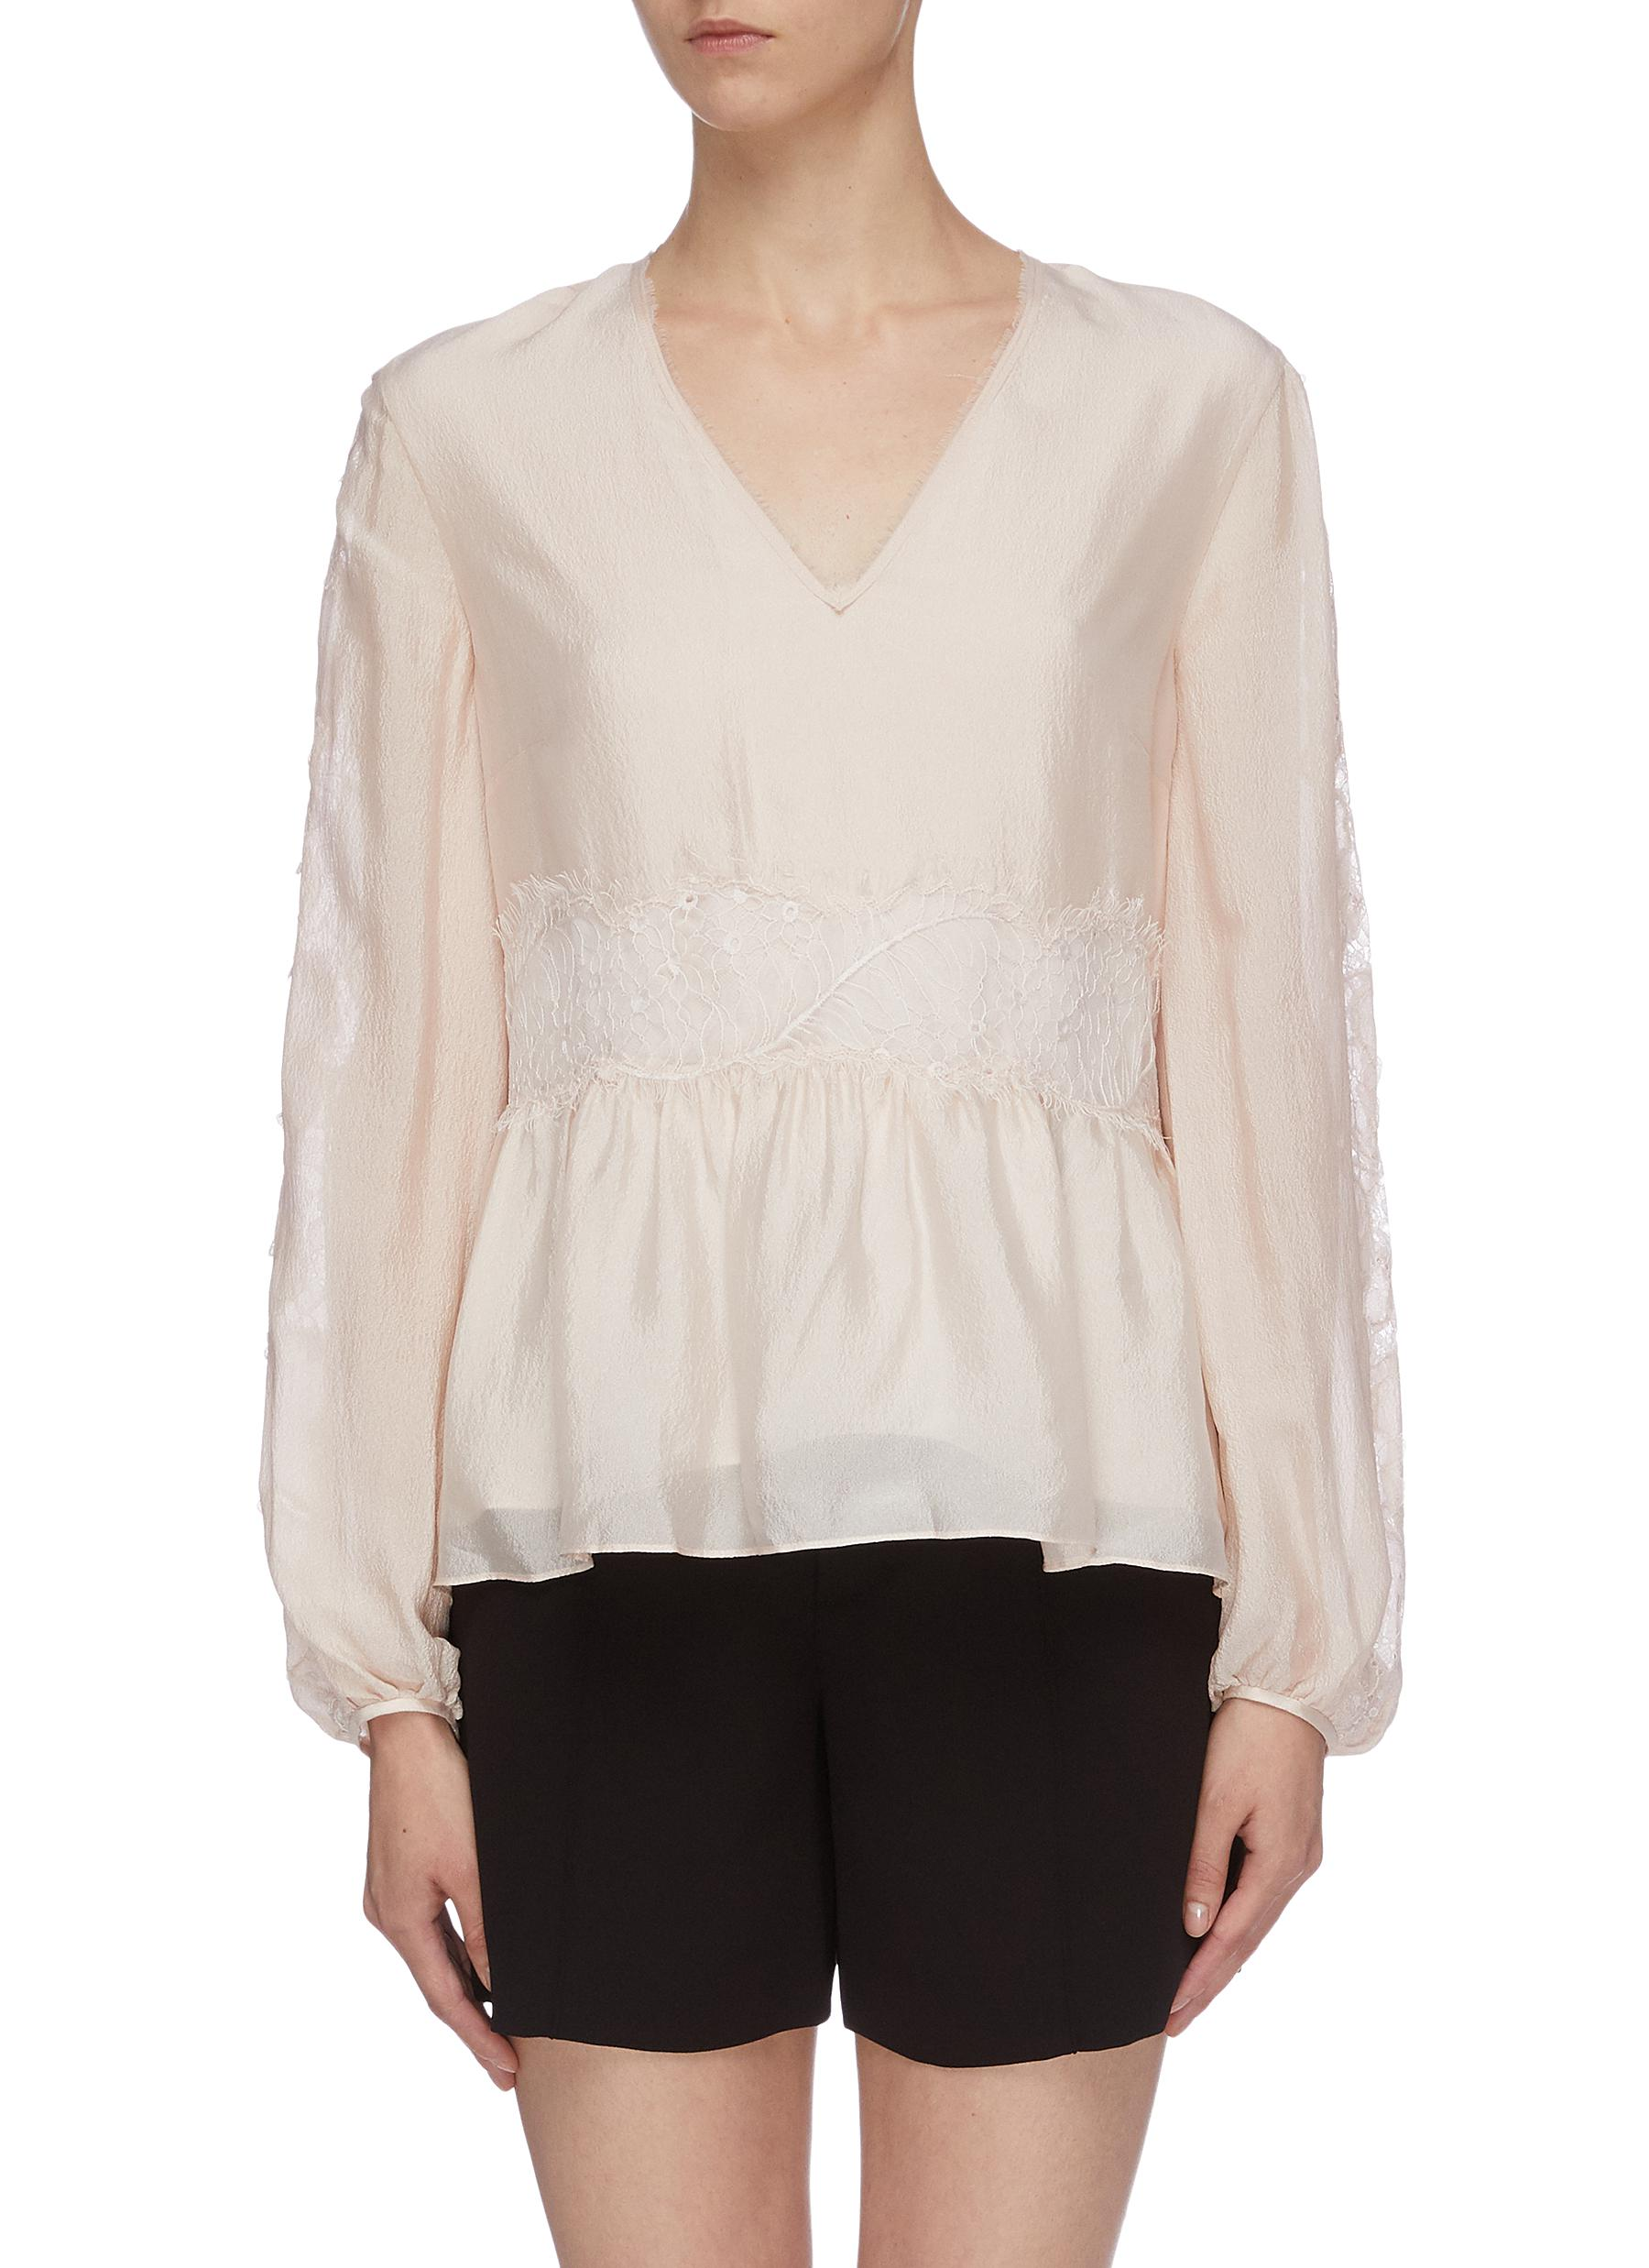 Lace insert crinkled silk V-neck peplum top by 3.1 Phillip Lim